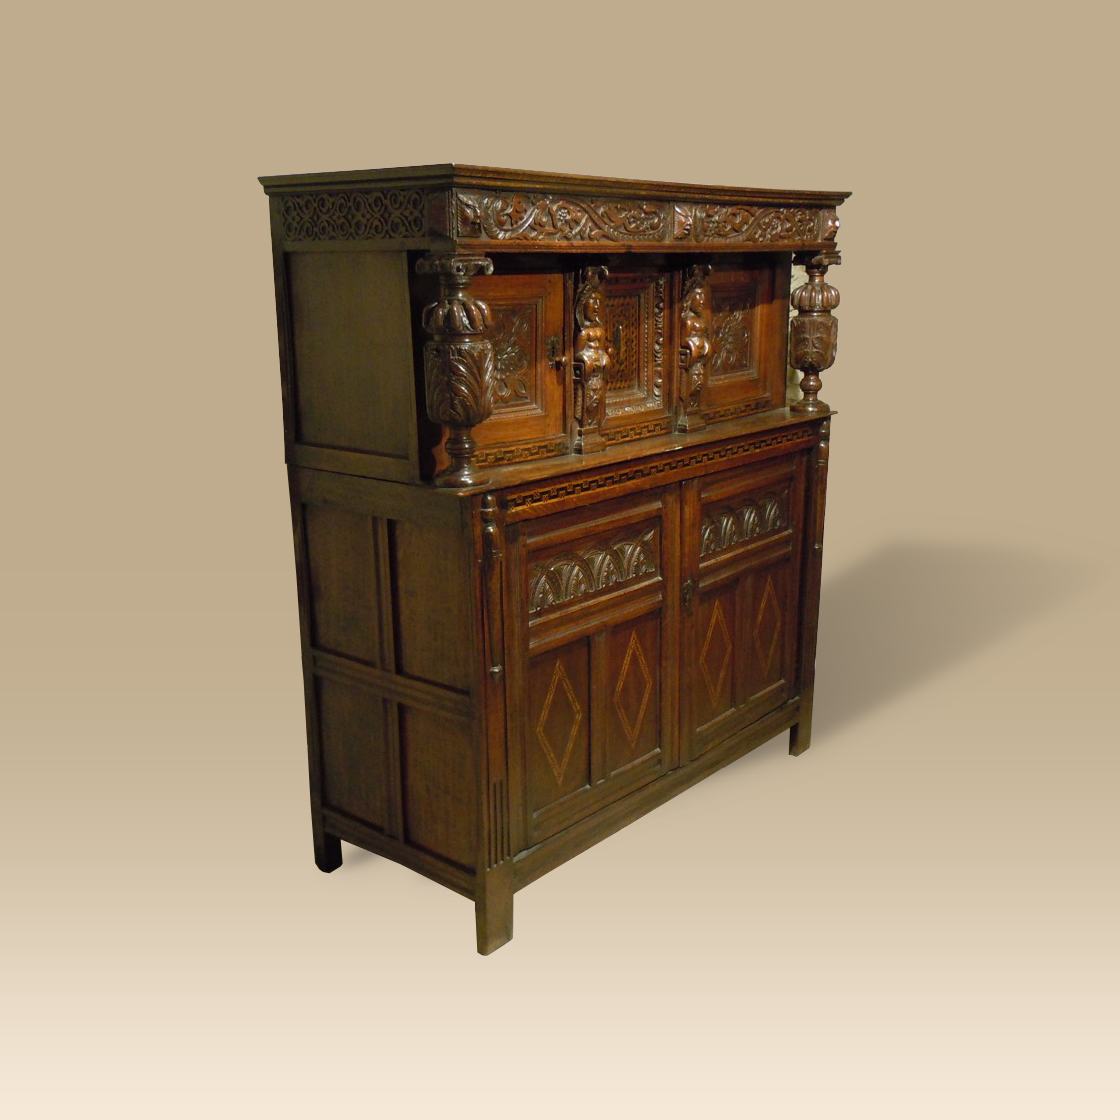 A Very Fine Late 16th Century Early 17th Century Oak Joined Press/Court Cupboard